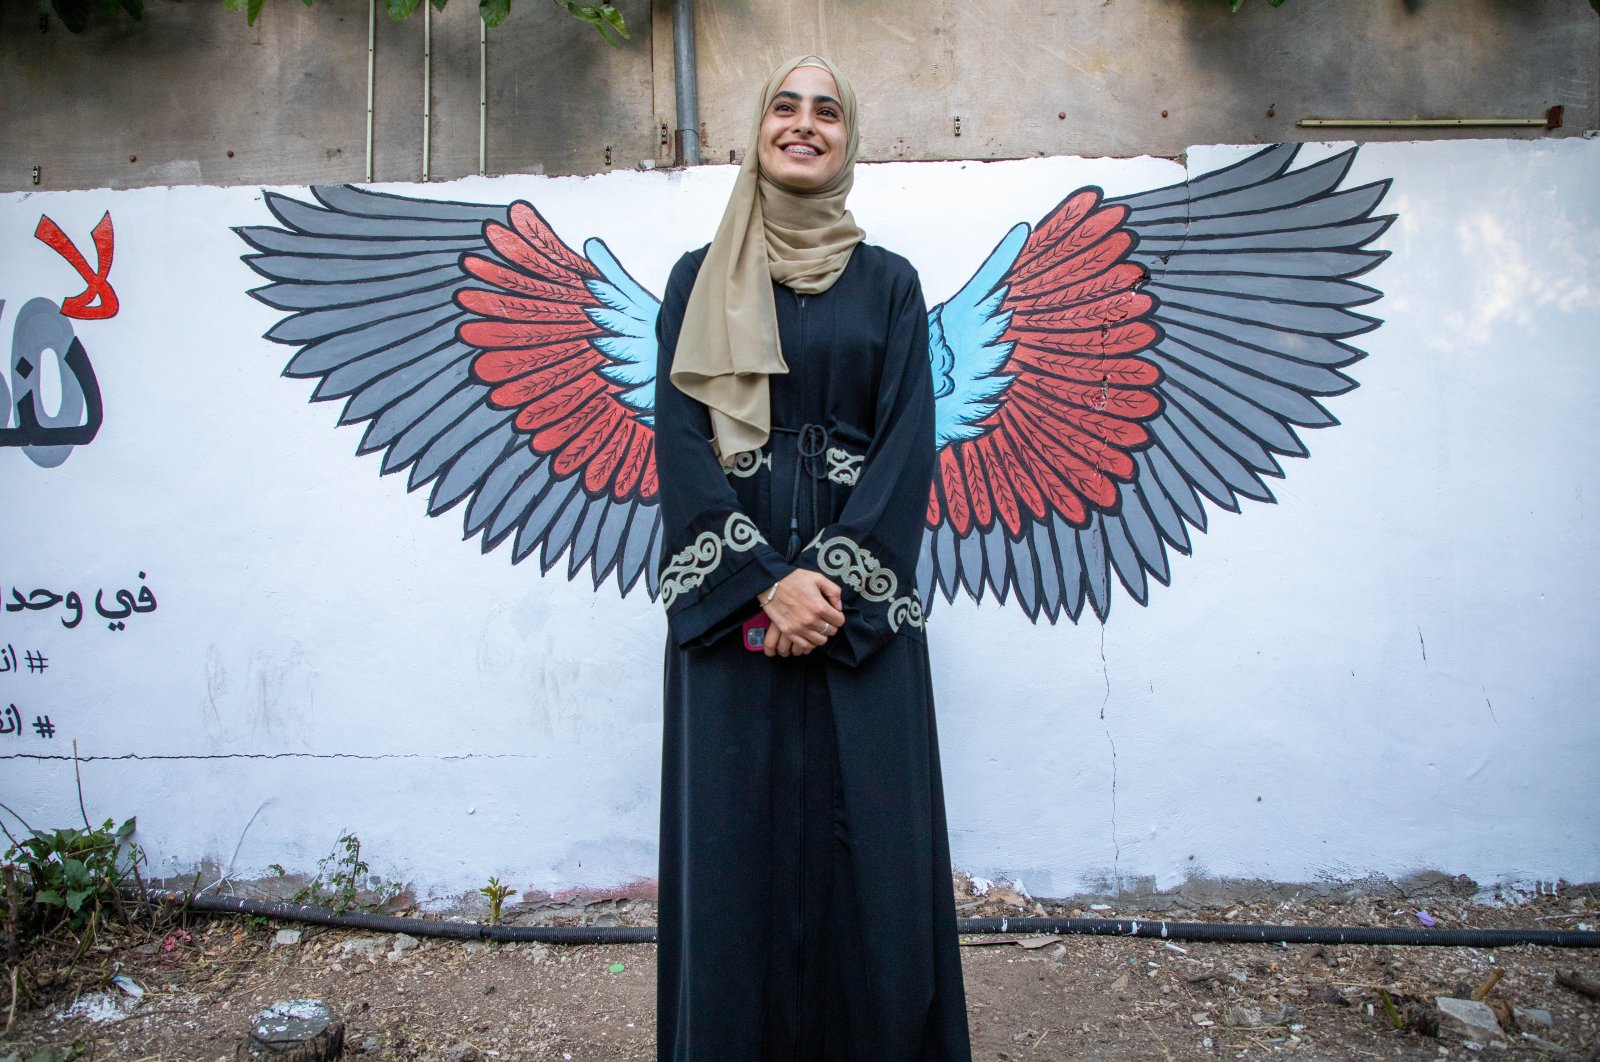 Muna al-Kurd, a 23-year-old Palestinian activist, poses for a photo in Sheikh Jarrah, occupied East Jerusalem, Palestine, June 10, 2021. (AA Photo)